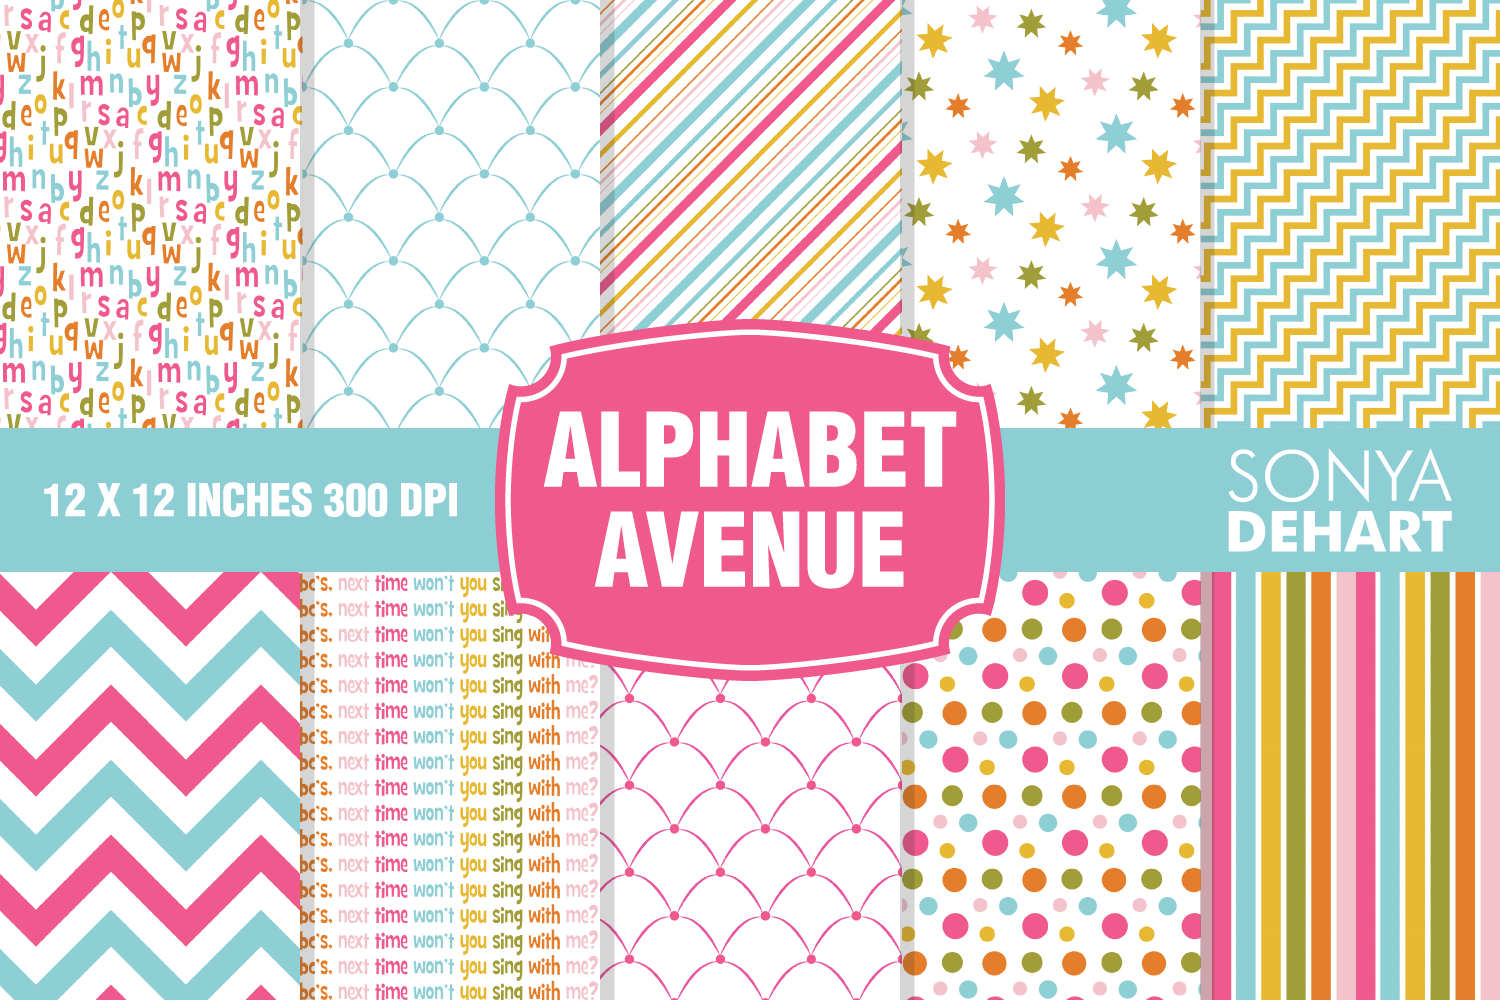 Alphabet Avenue Kids Digital Paper Pattern Pack example image 1